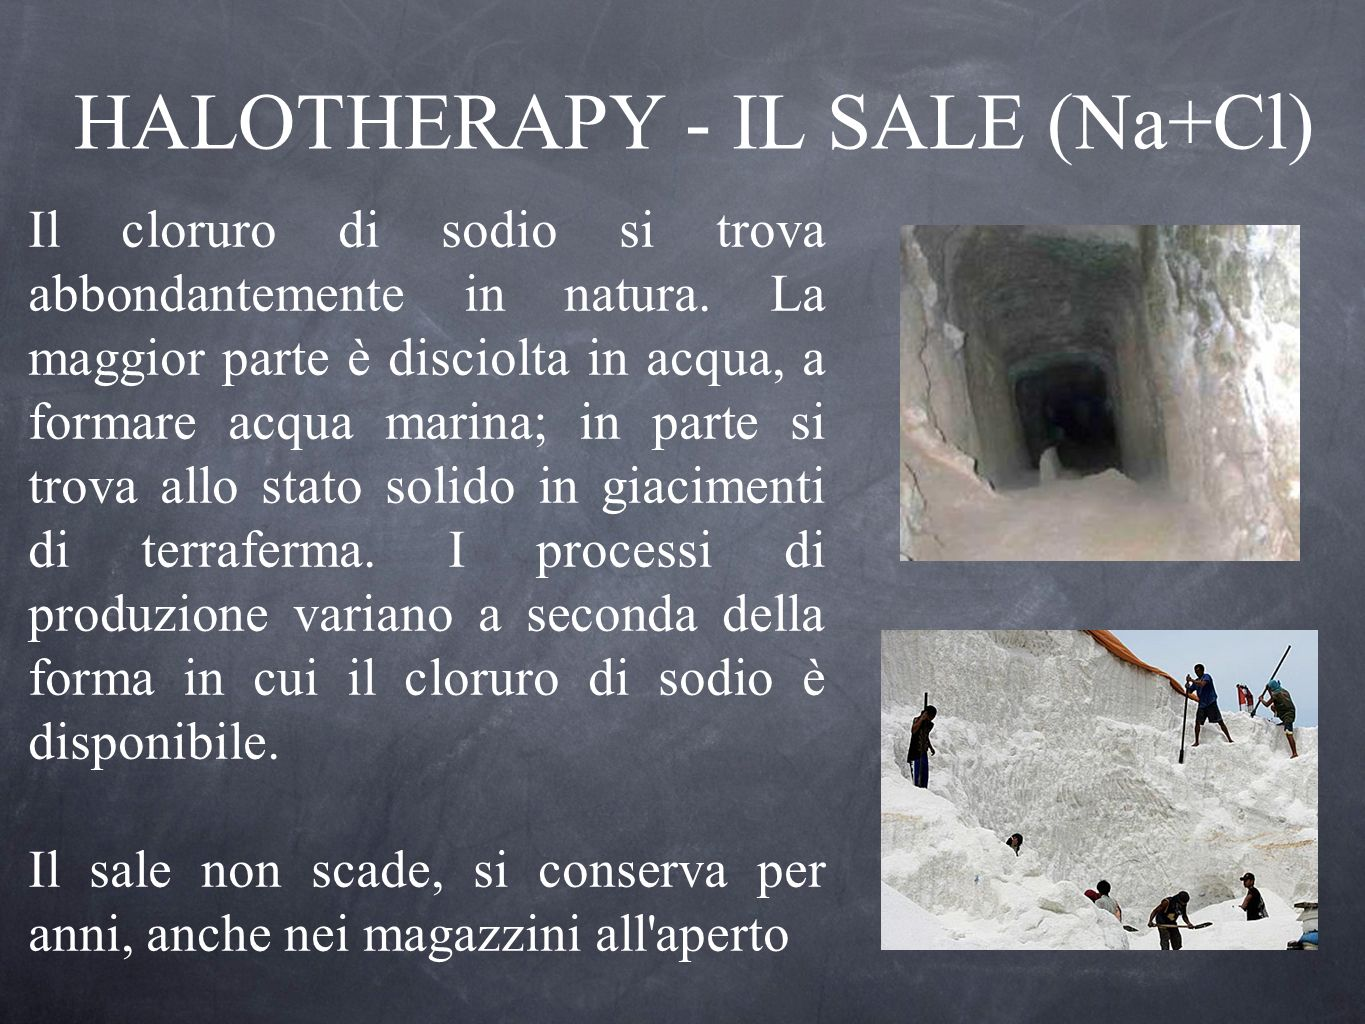 HALOTHERAPY - IL SALE (Na+Cl)